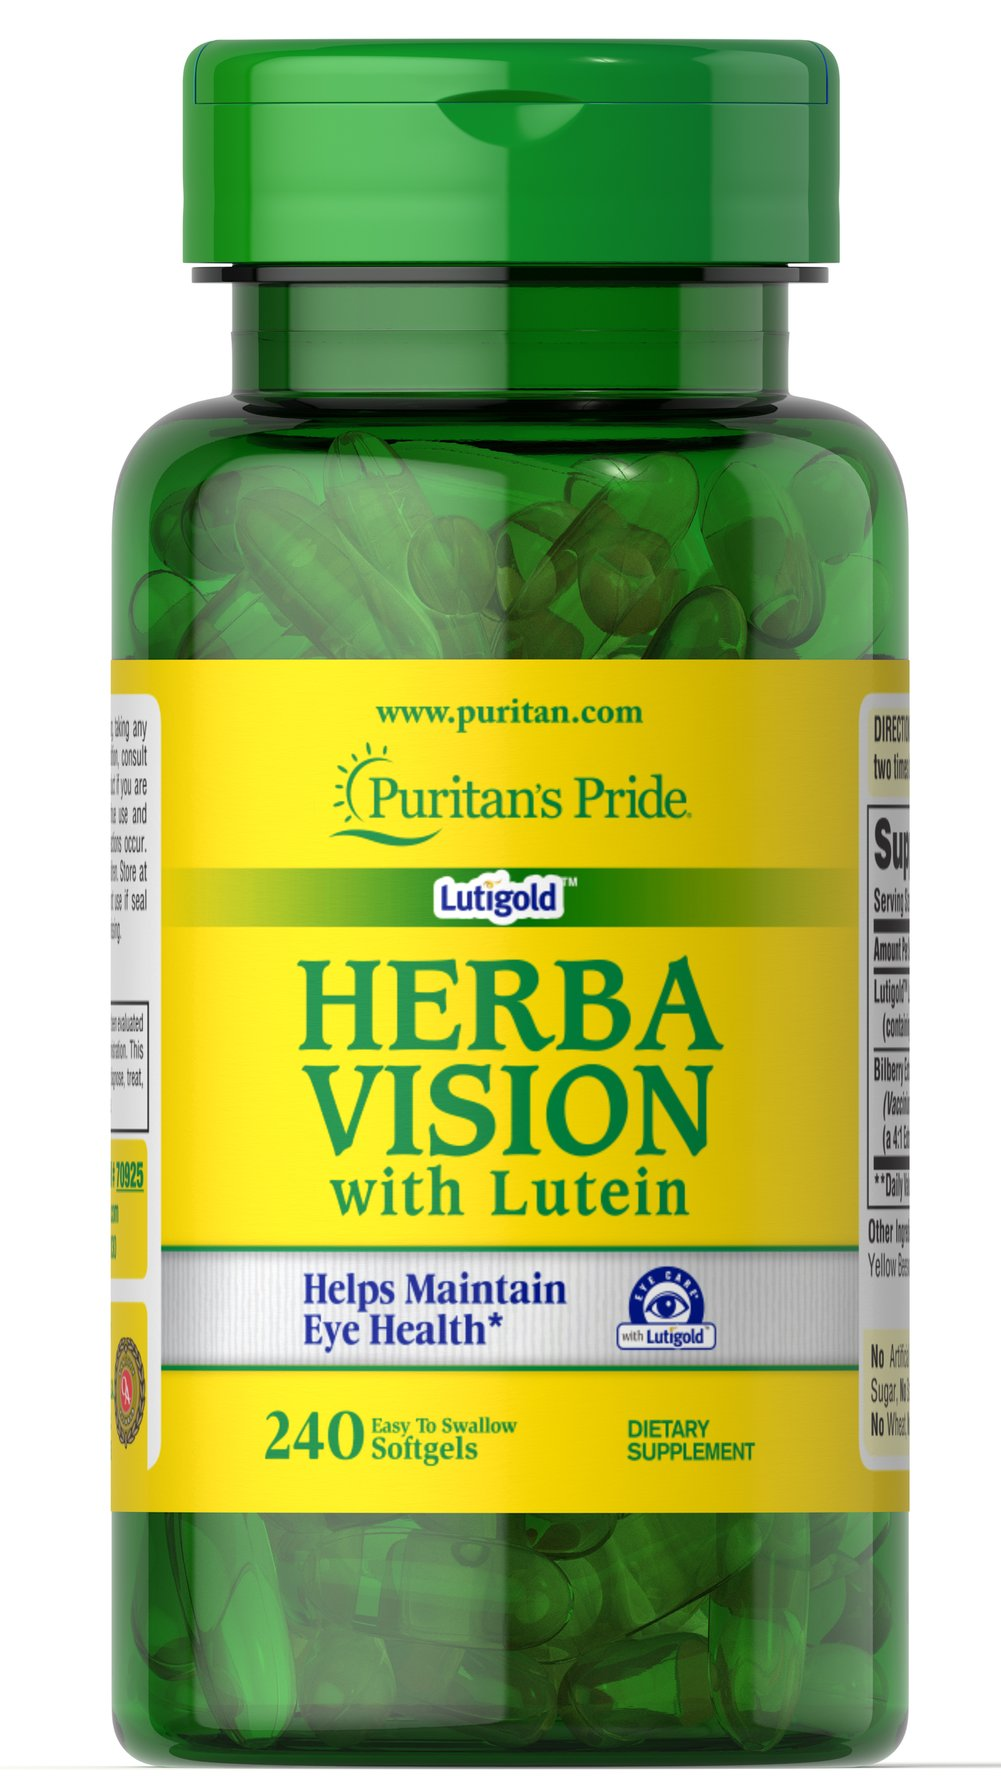 Herbavision with Lutein and Bilberry <p><strong></strong></p>•    Nutritional support for your eyes**<br />•    Contributes to healthy vision**<br />•    Formulated with Lutigold™ Lutein<br /><br />Formulated with Lutigold™Lutein, which is derived from only pure, natural sources.<br />Lutigold™ has never been synthesized in a lab and is a non-genetically modified